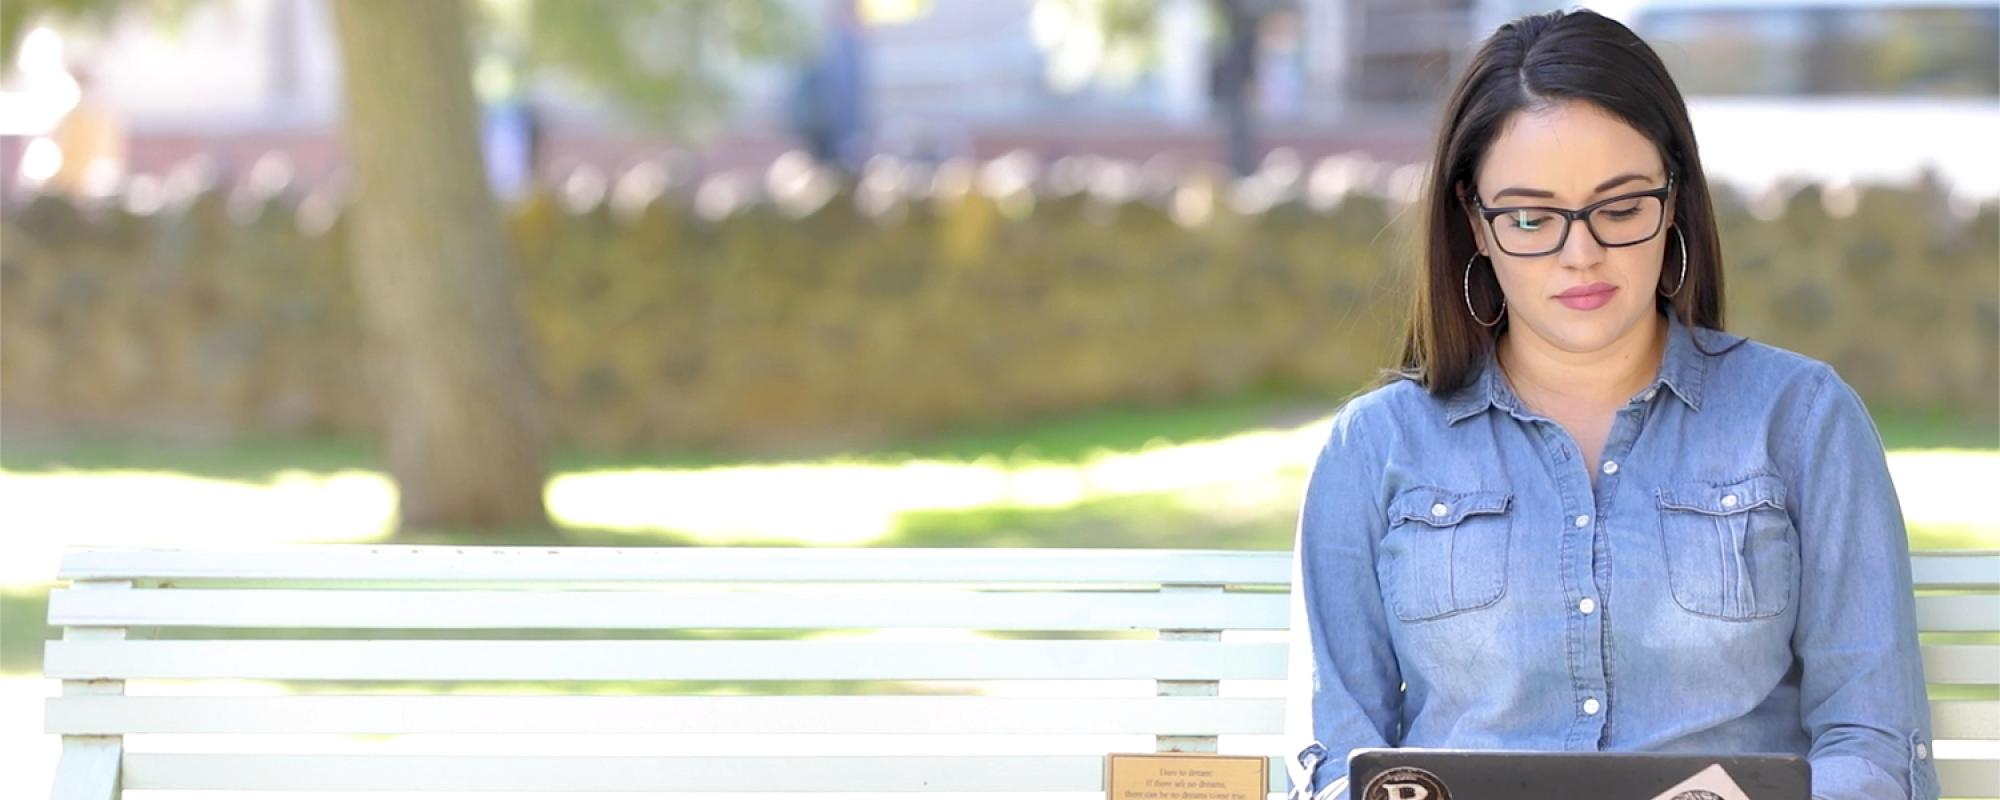 Student studying on campus park bench